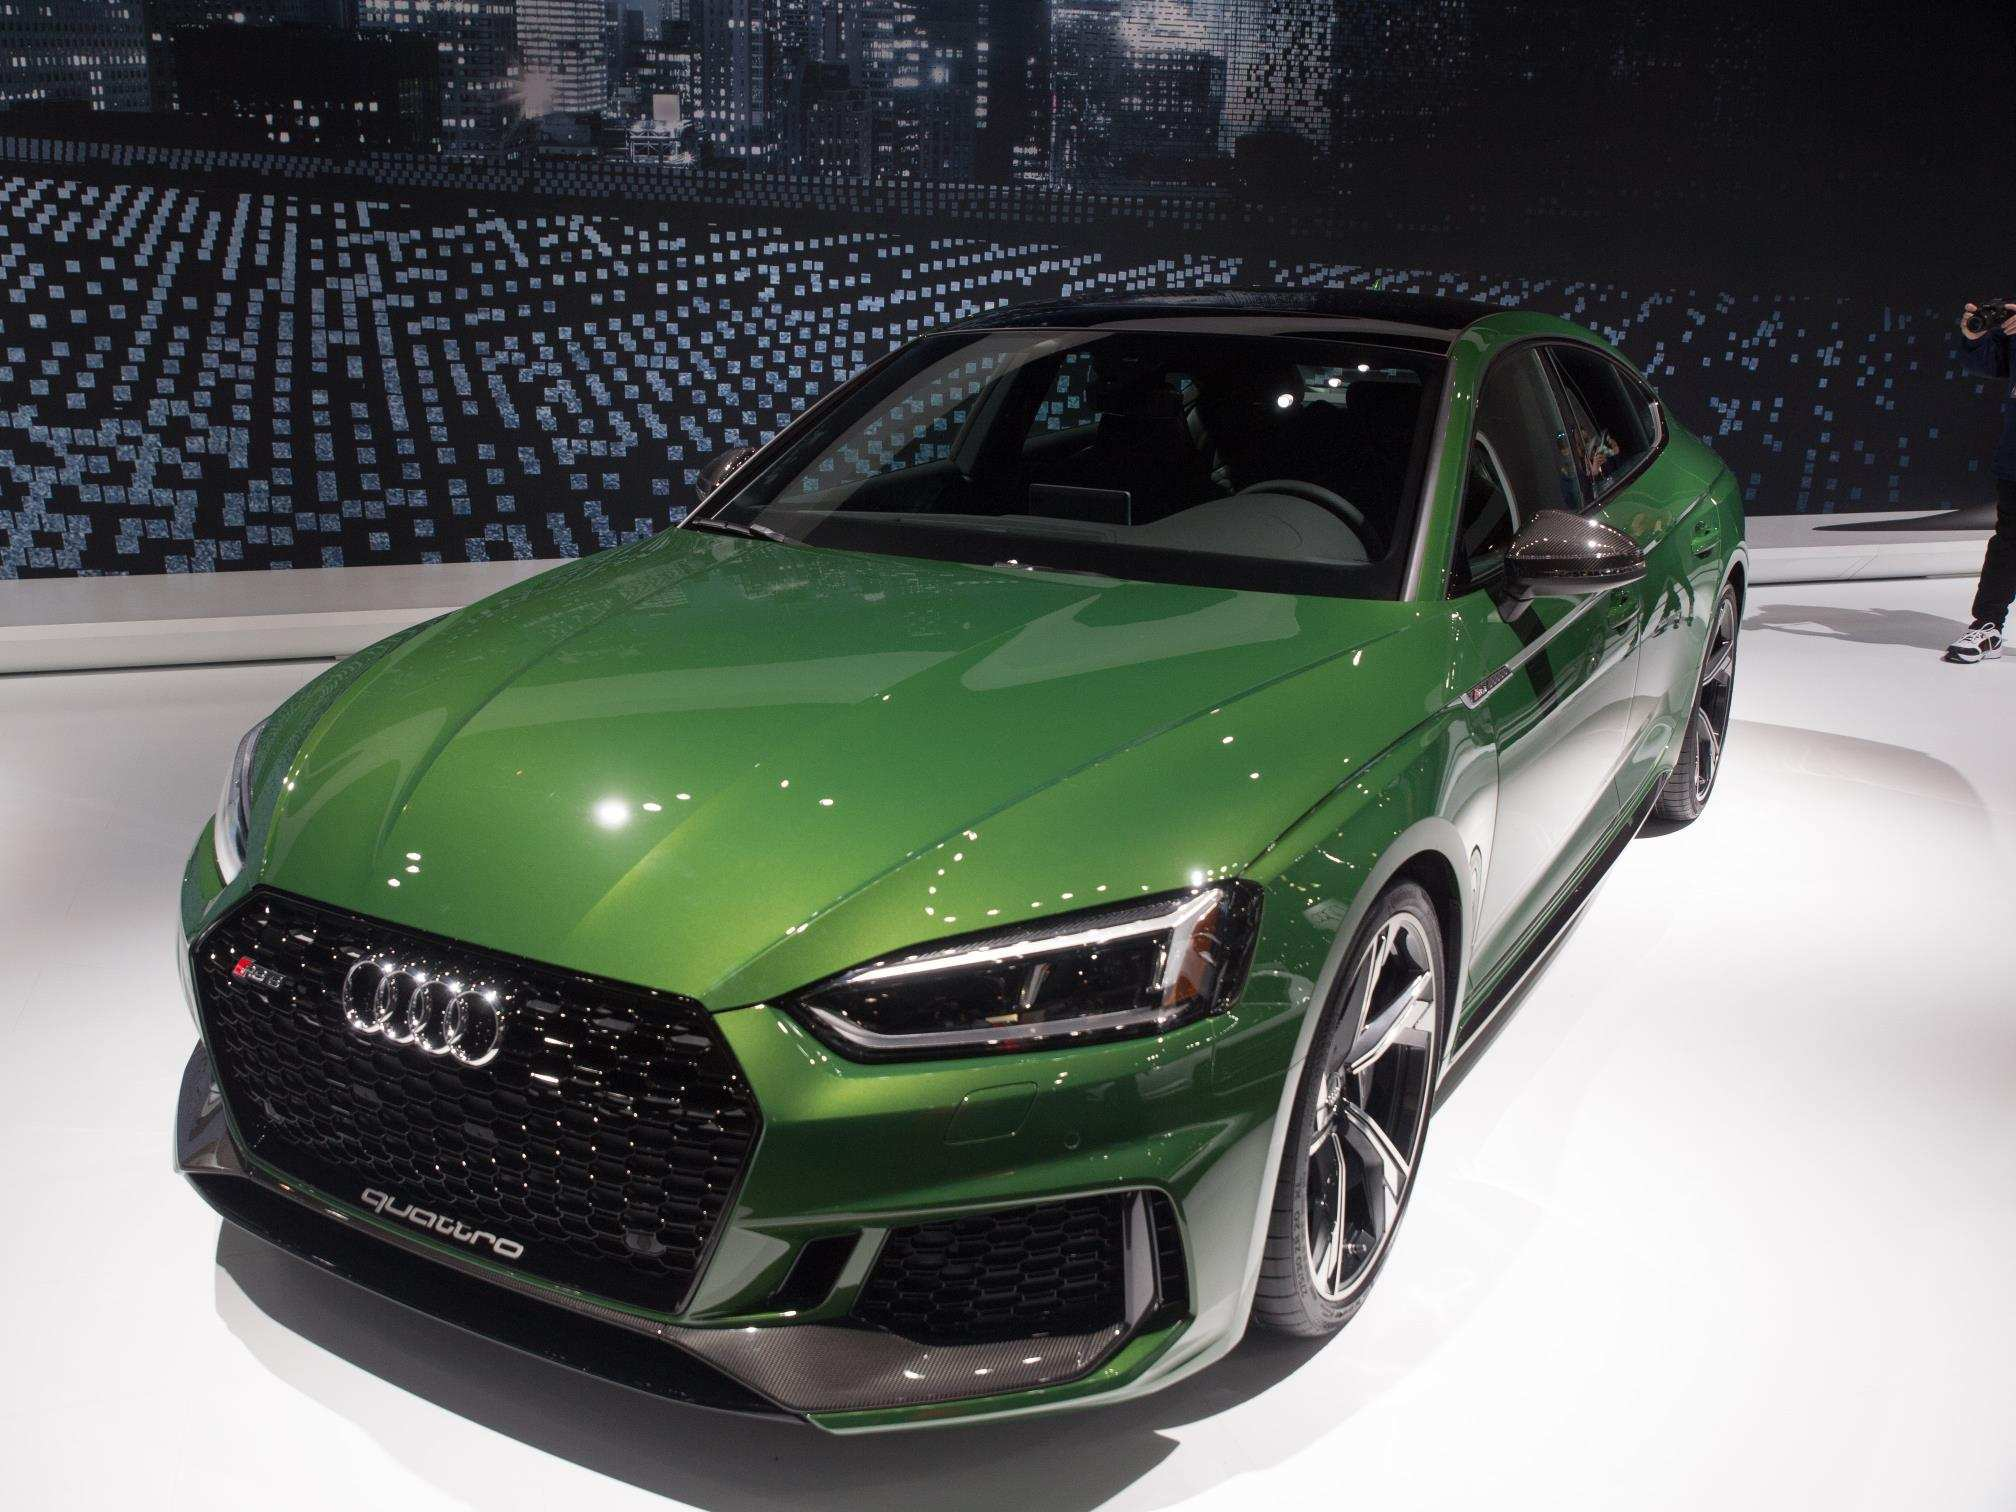 24 Great 2019 Audi Green Photos for 2019 Audi Green